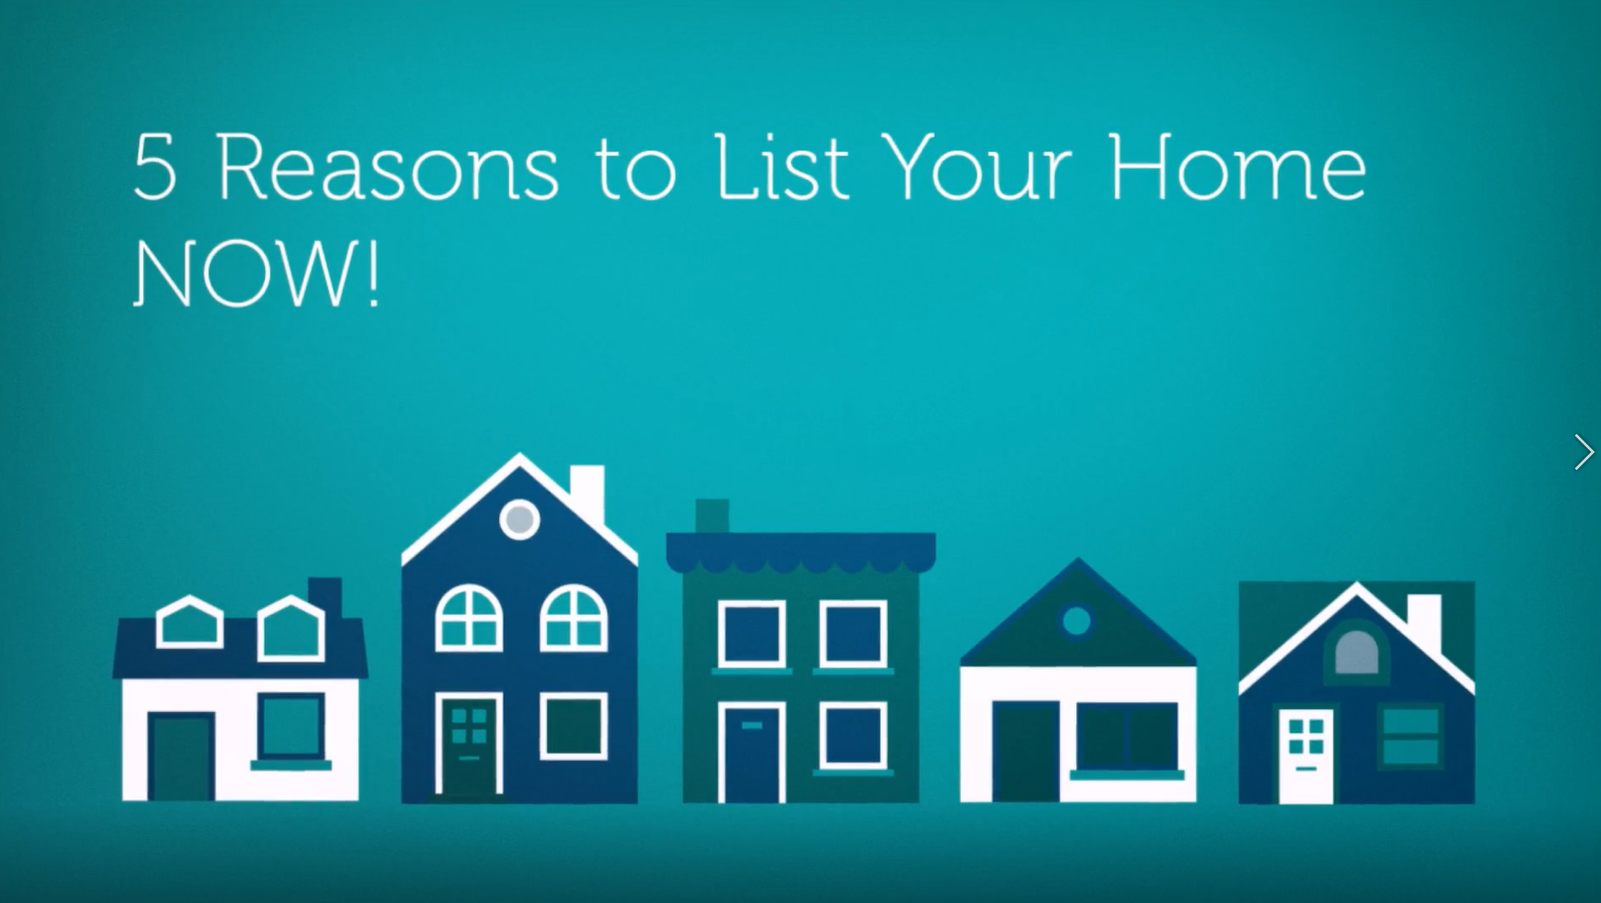 5-reasons-to-list-your-home-now-2020 (1).mp4